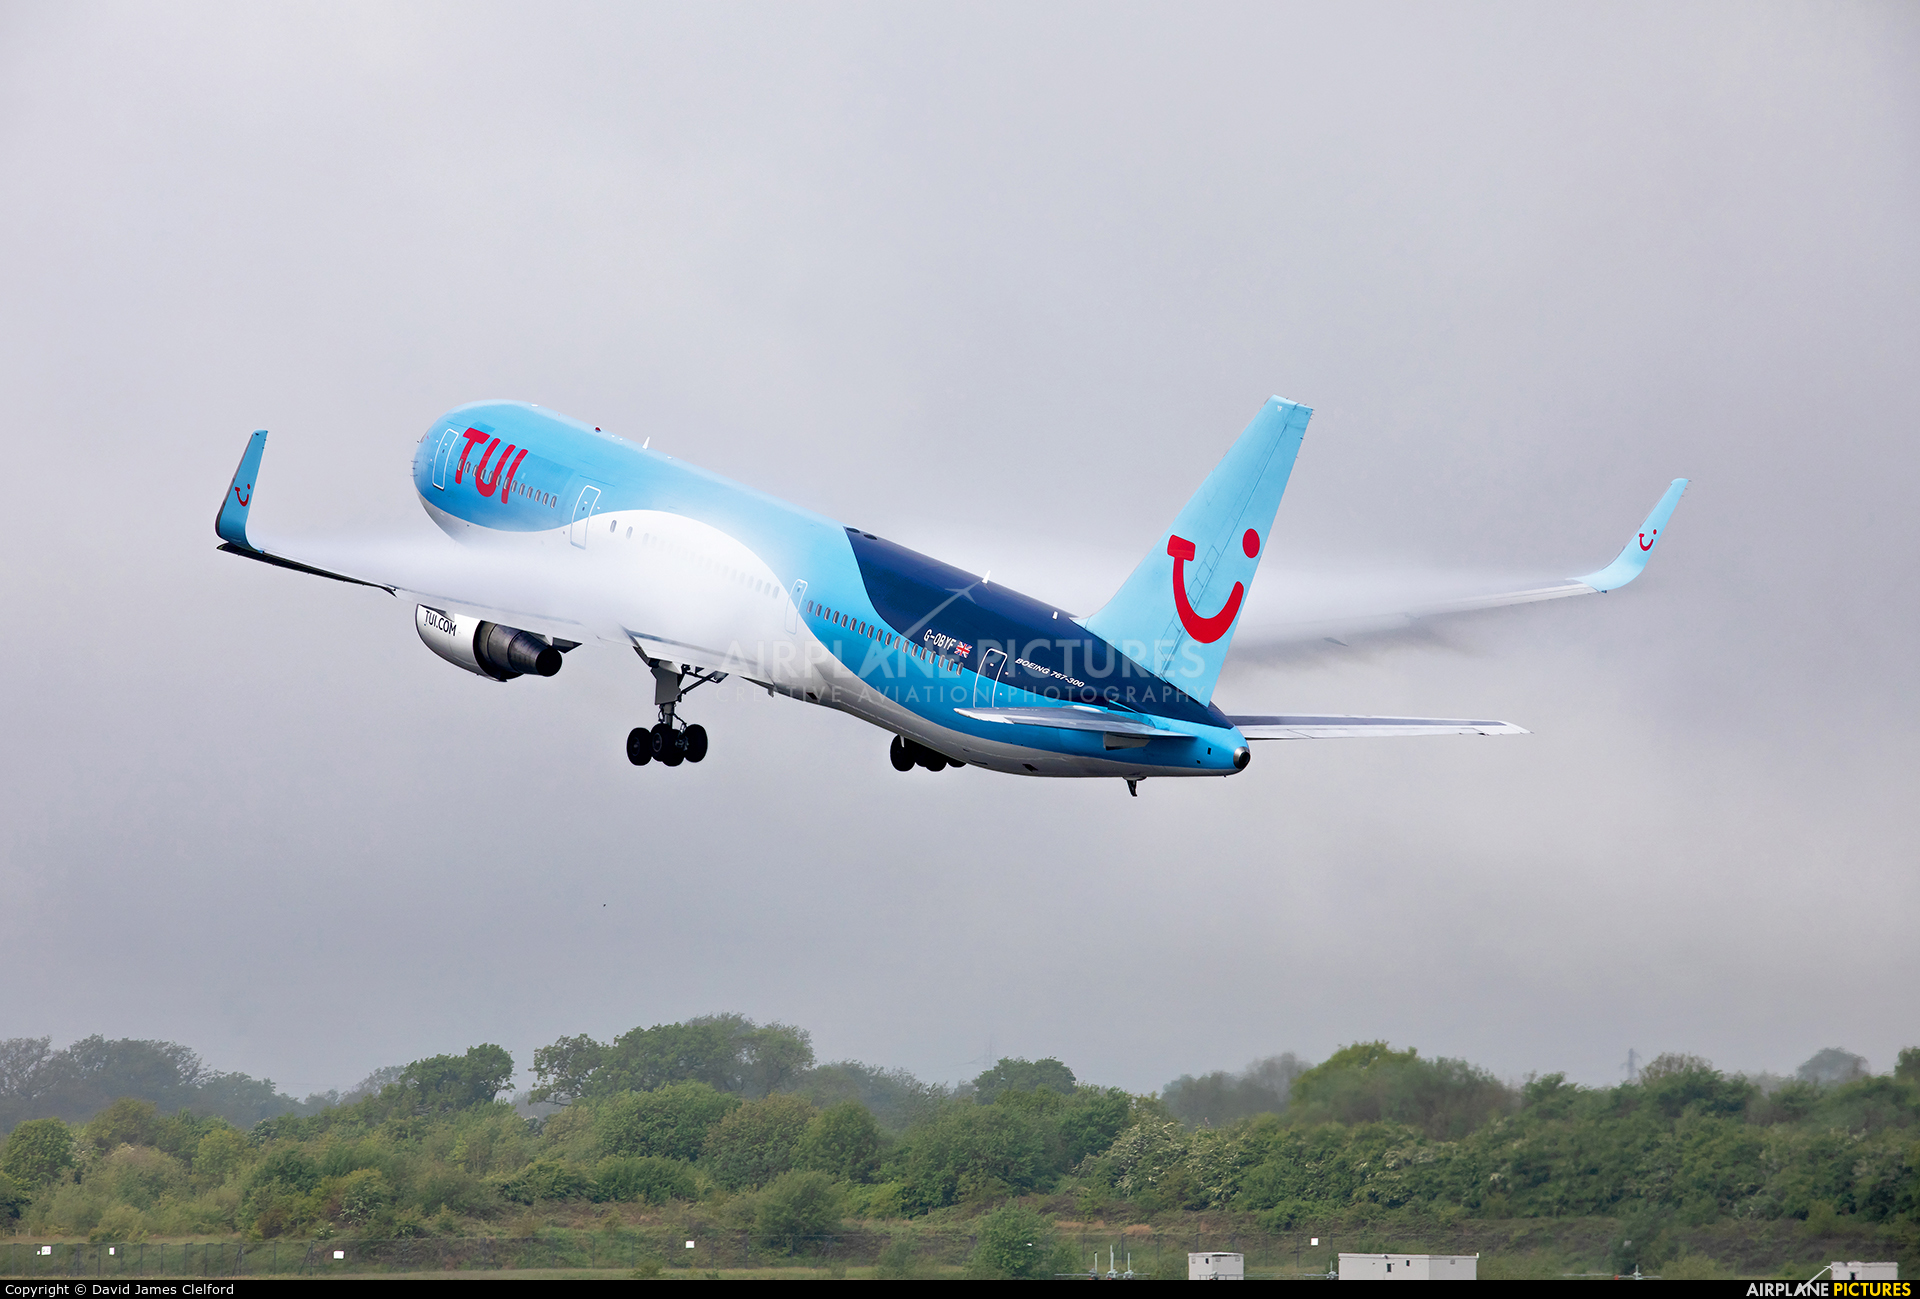 TUI Airways G-OBYF aircraft at Manchester